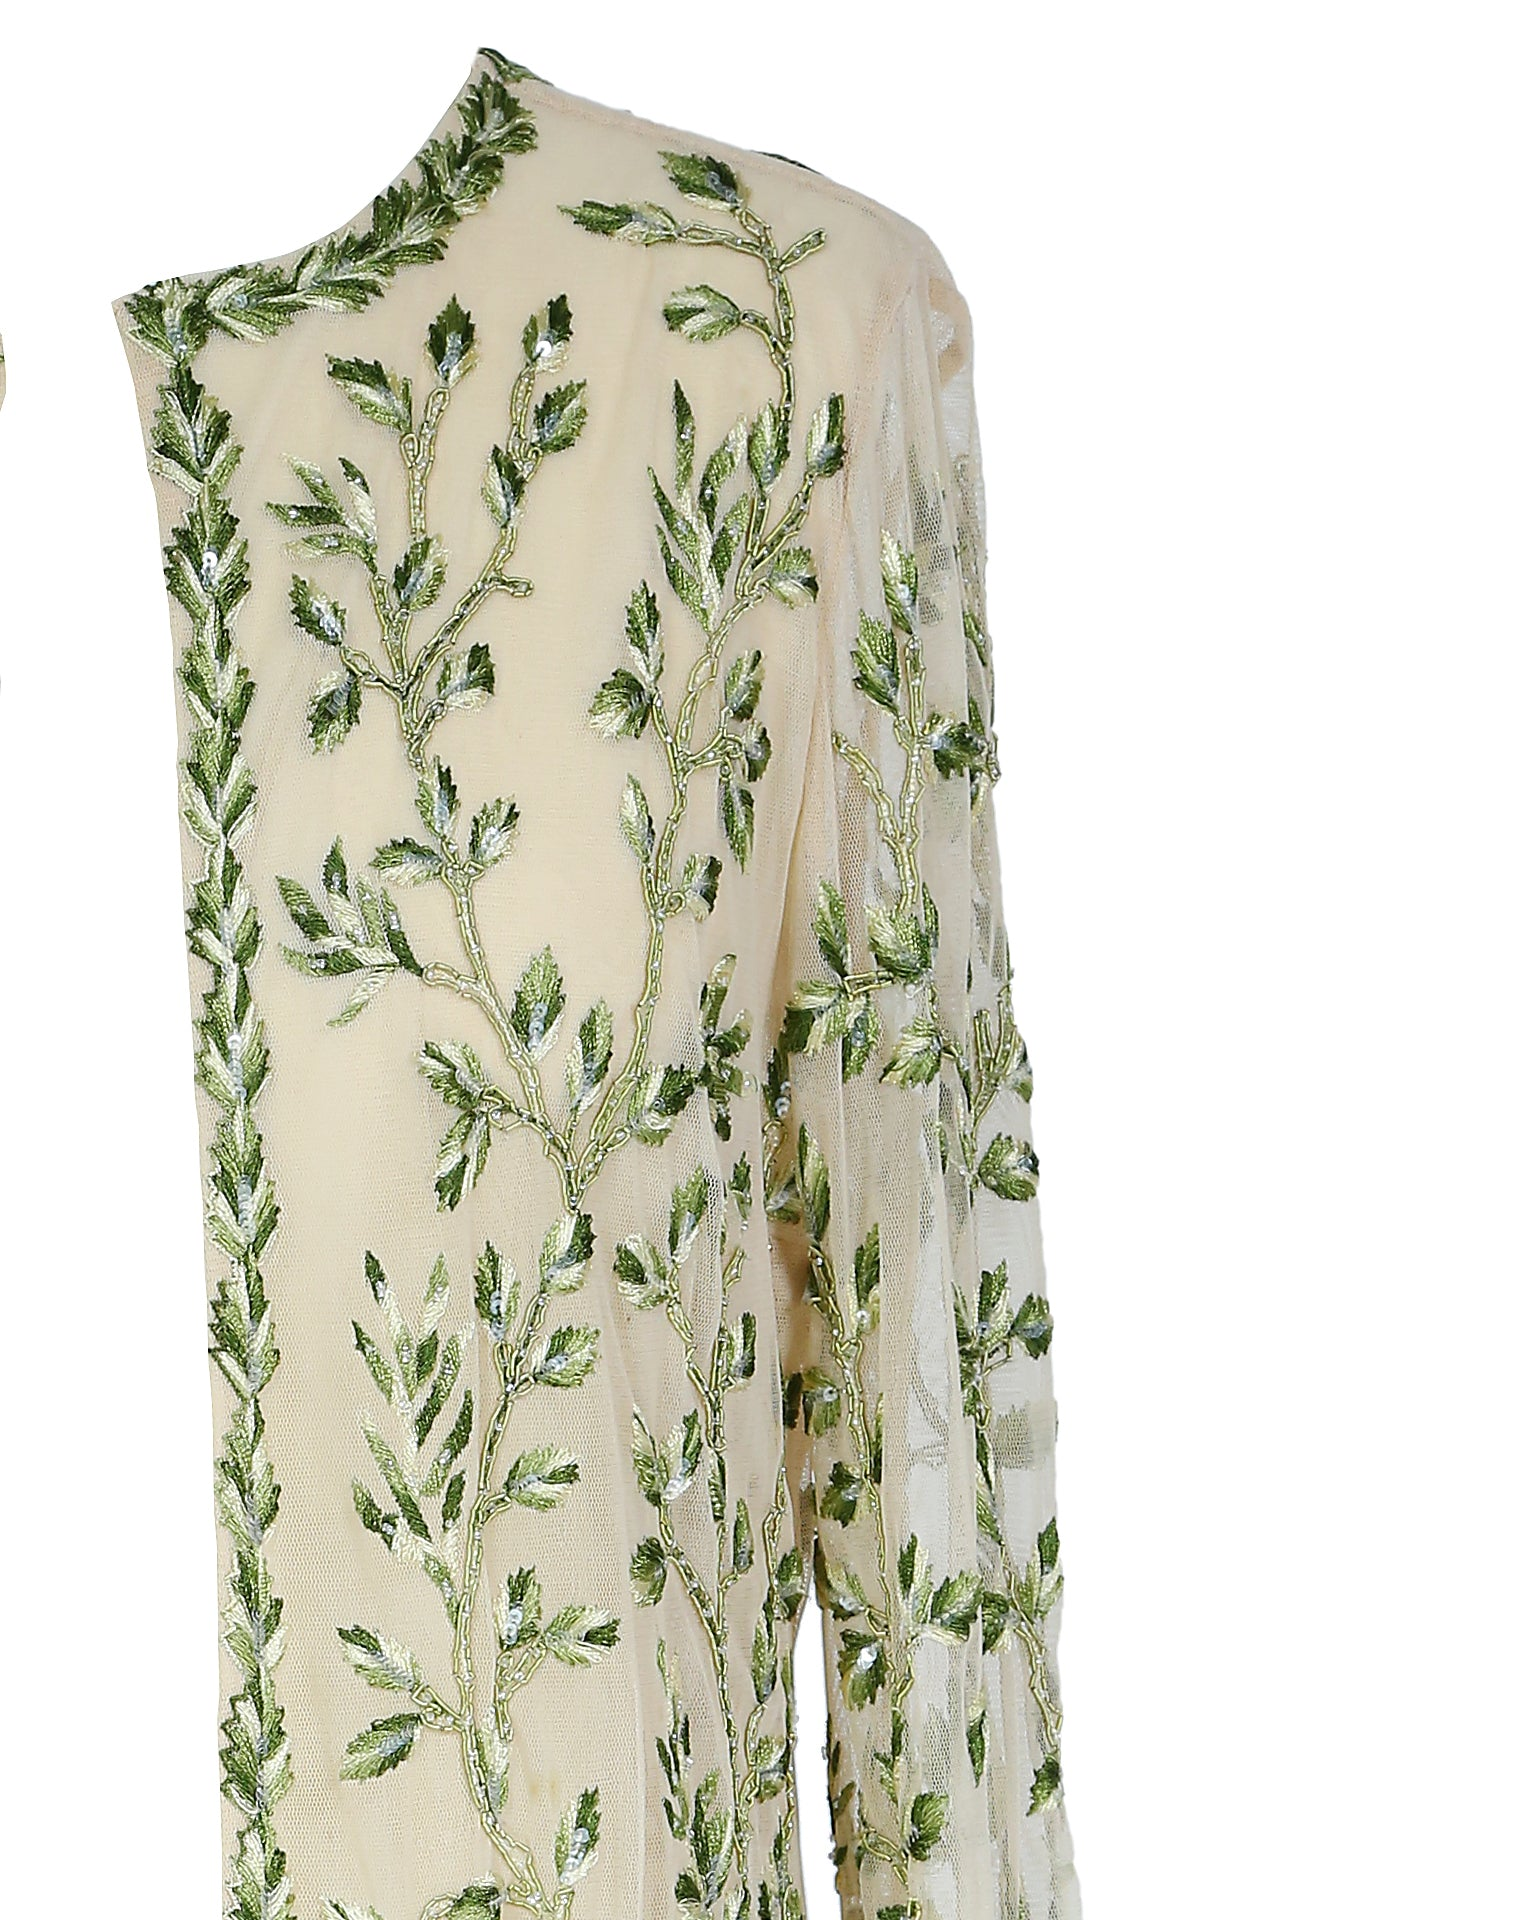 Oscar de la Renta Embroidered Coat with Green Foliage Size 38 (EU)